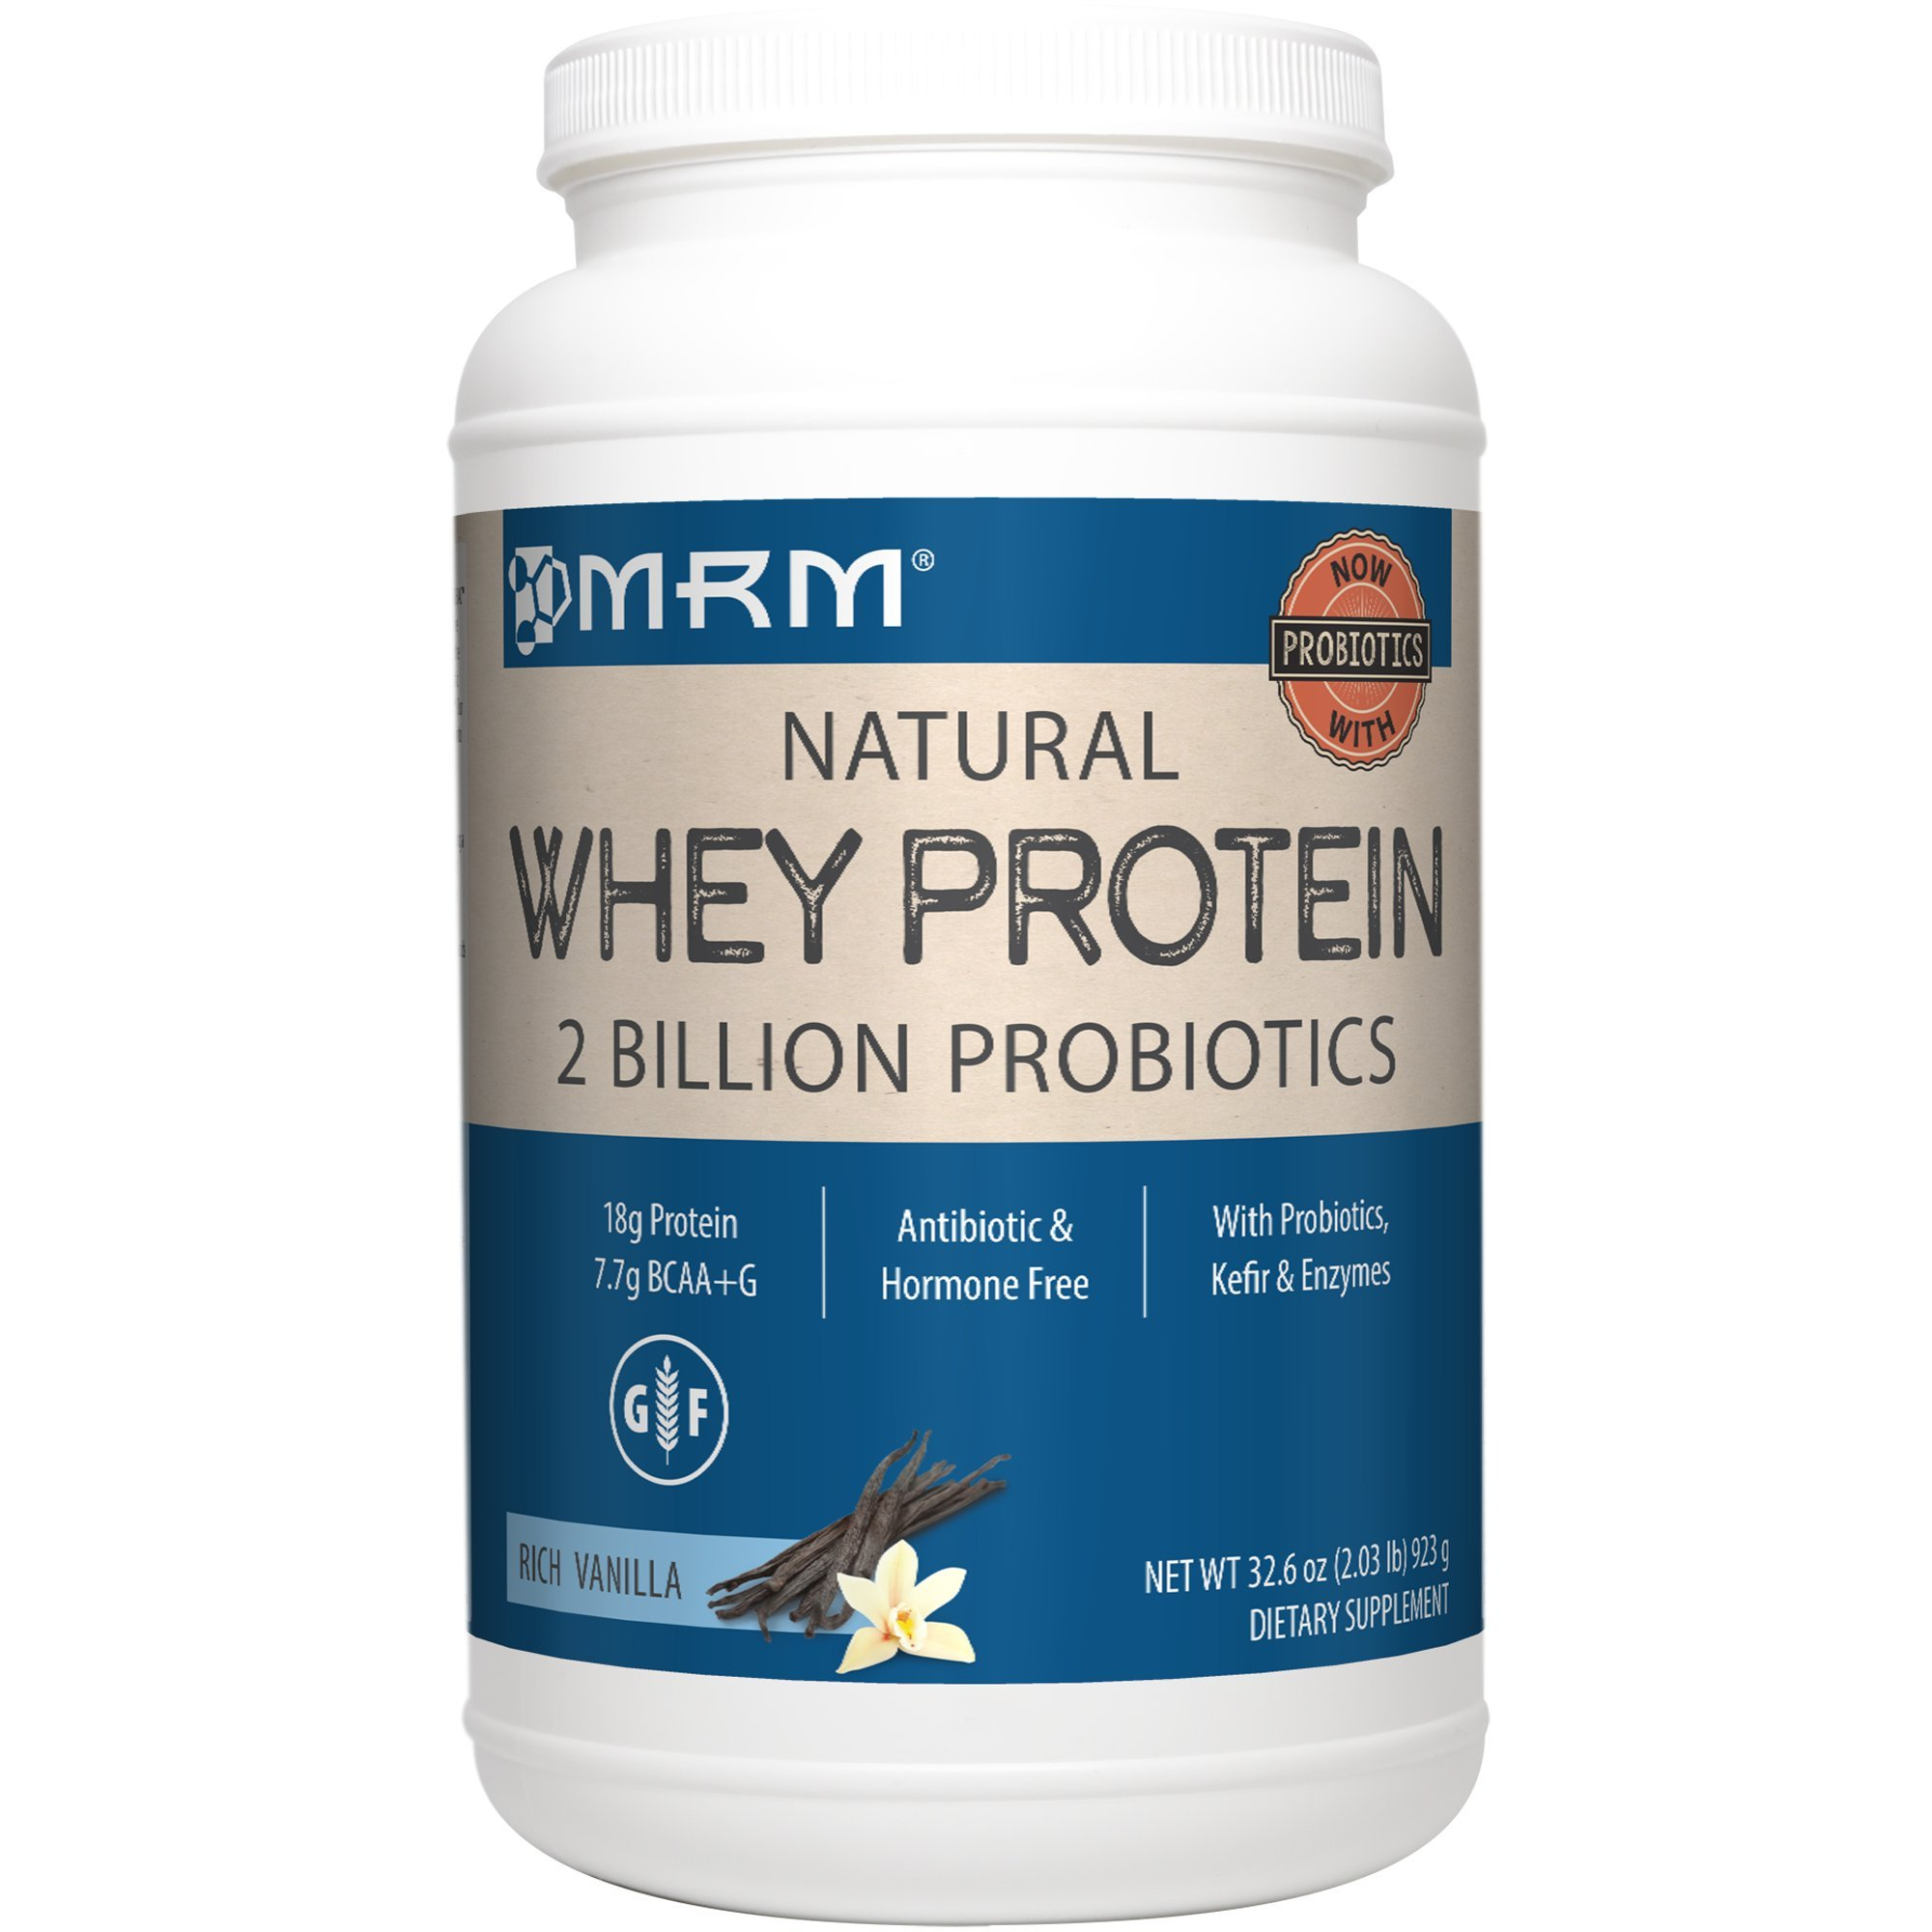 MRM - Whey Protein Powder, Maximum Muscle Growth and Development, with Essential Amino Acids (Rich Vanilla, 2 lbs)